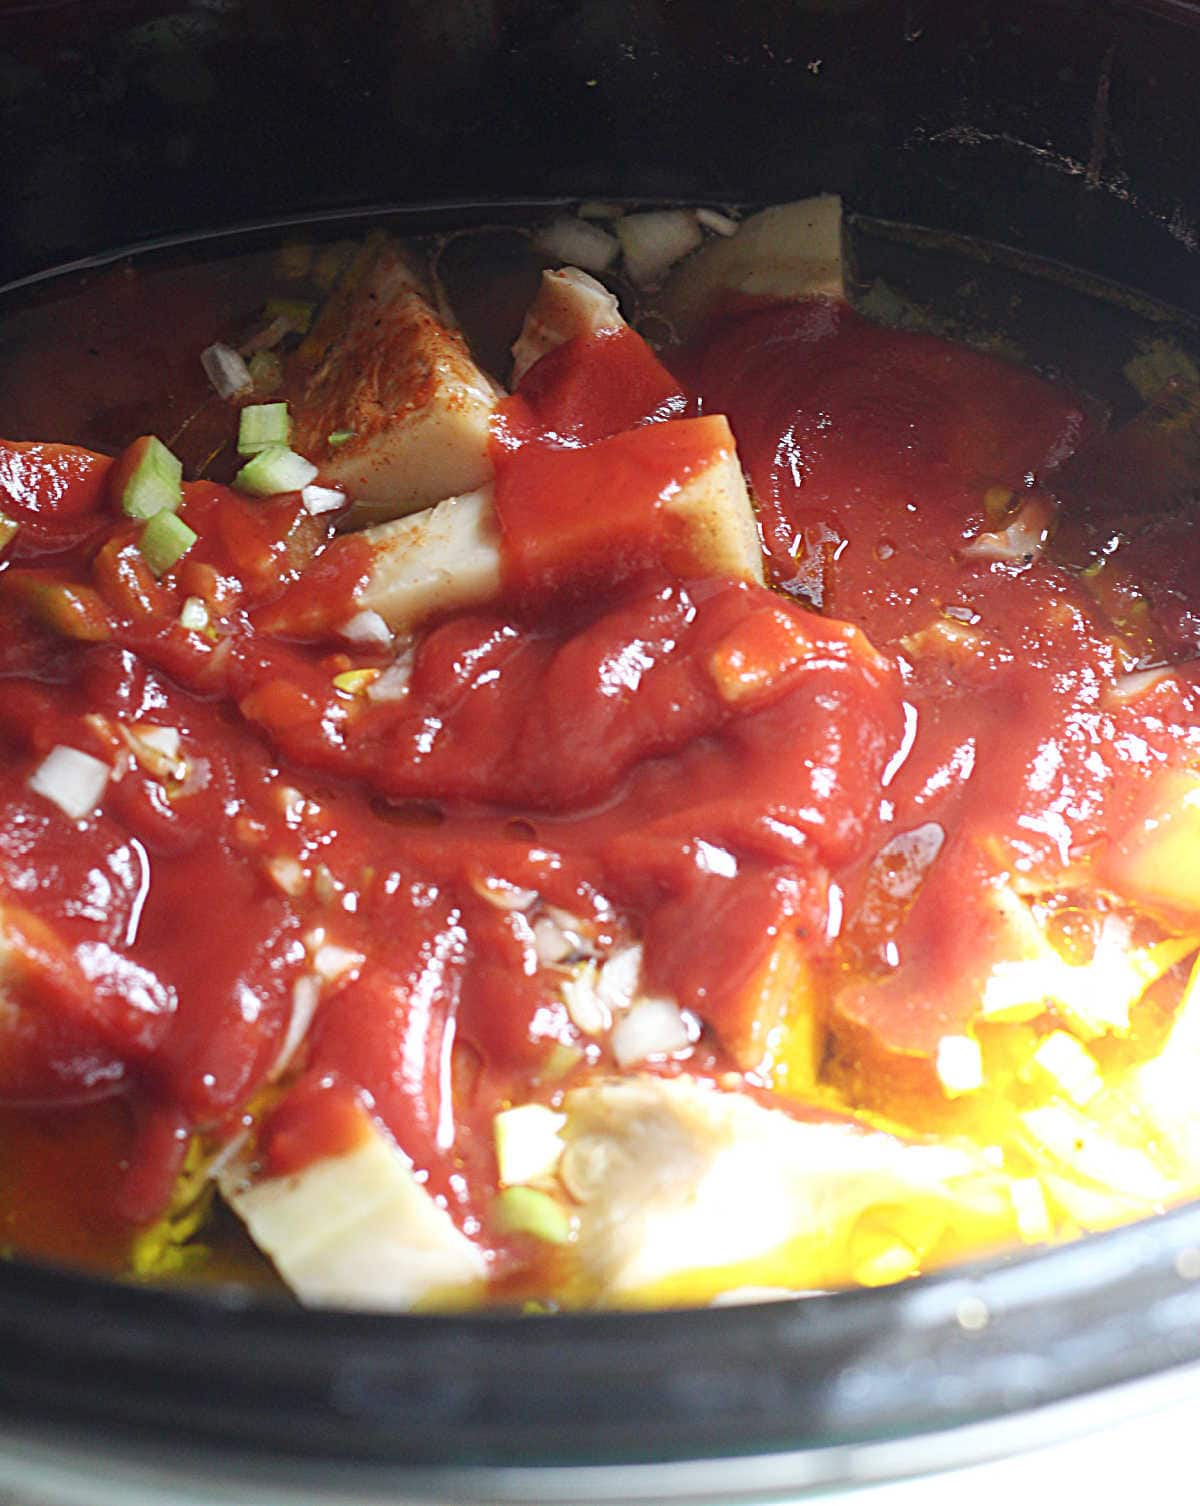 young jackfruit with gluten free barbeque sauce ingredients in a slow cooker to make vegan jackfruit pulled pork